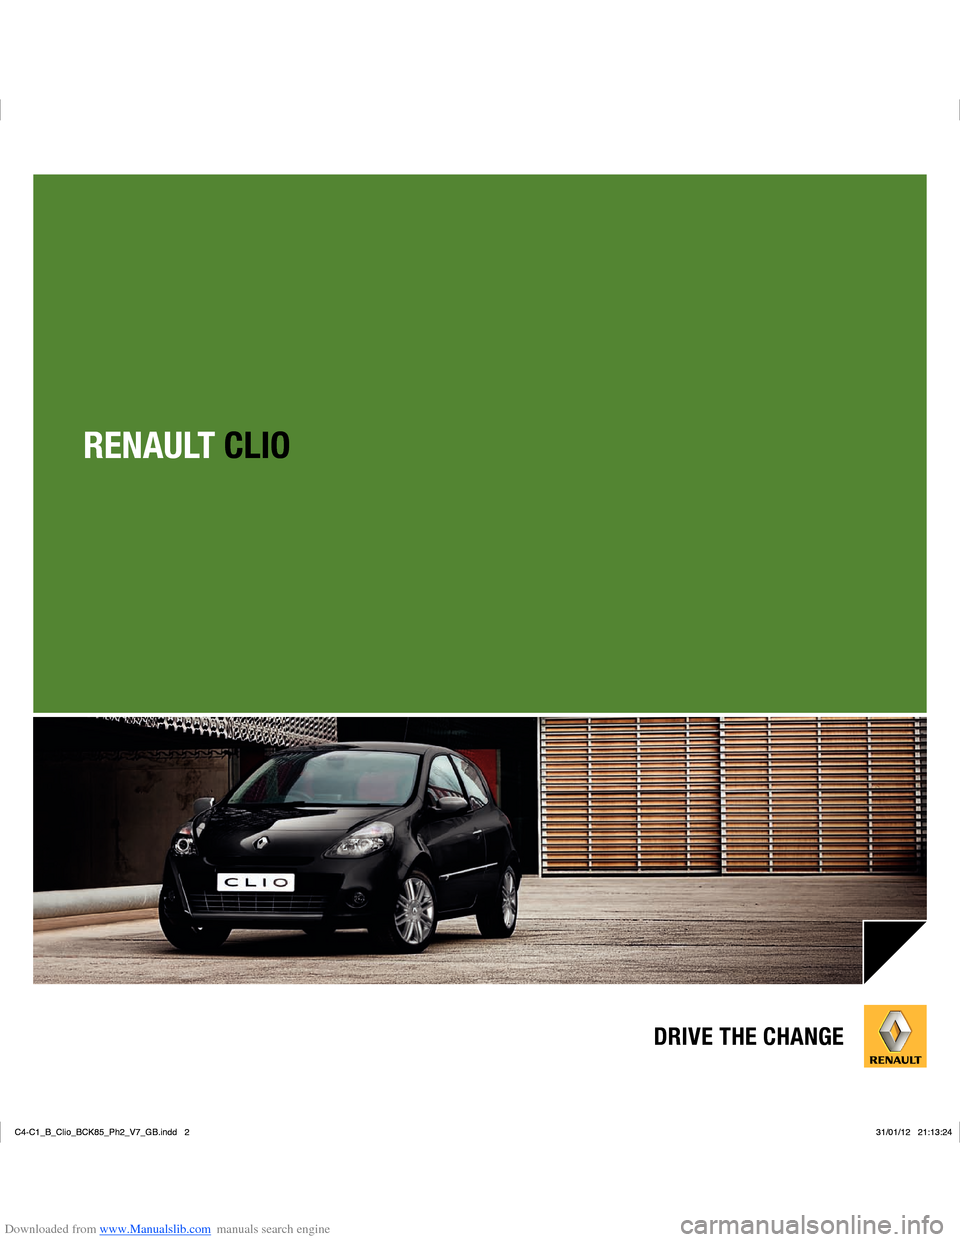 RENAULT CLIO 2012 X85 / 3.G User Manual, Page 1